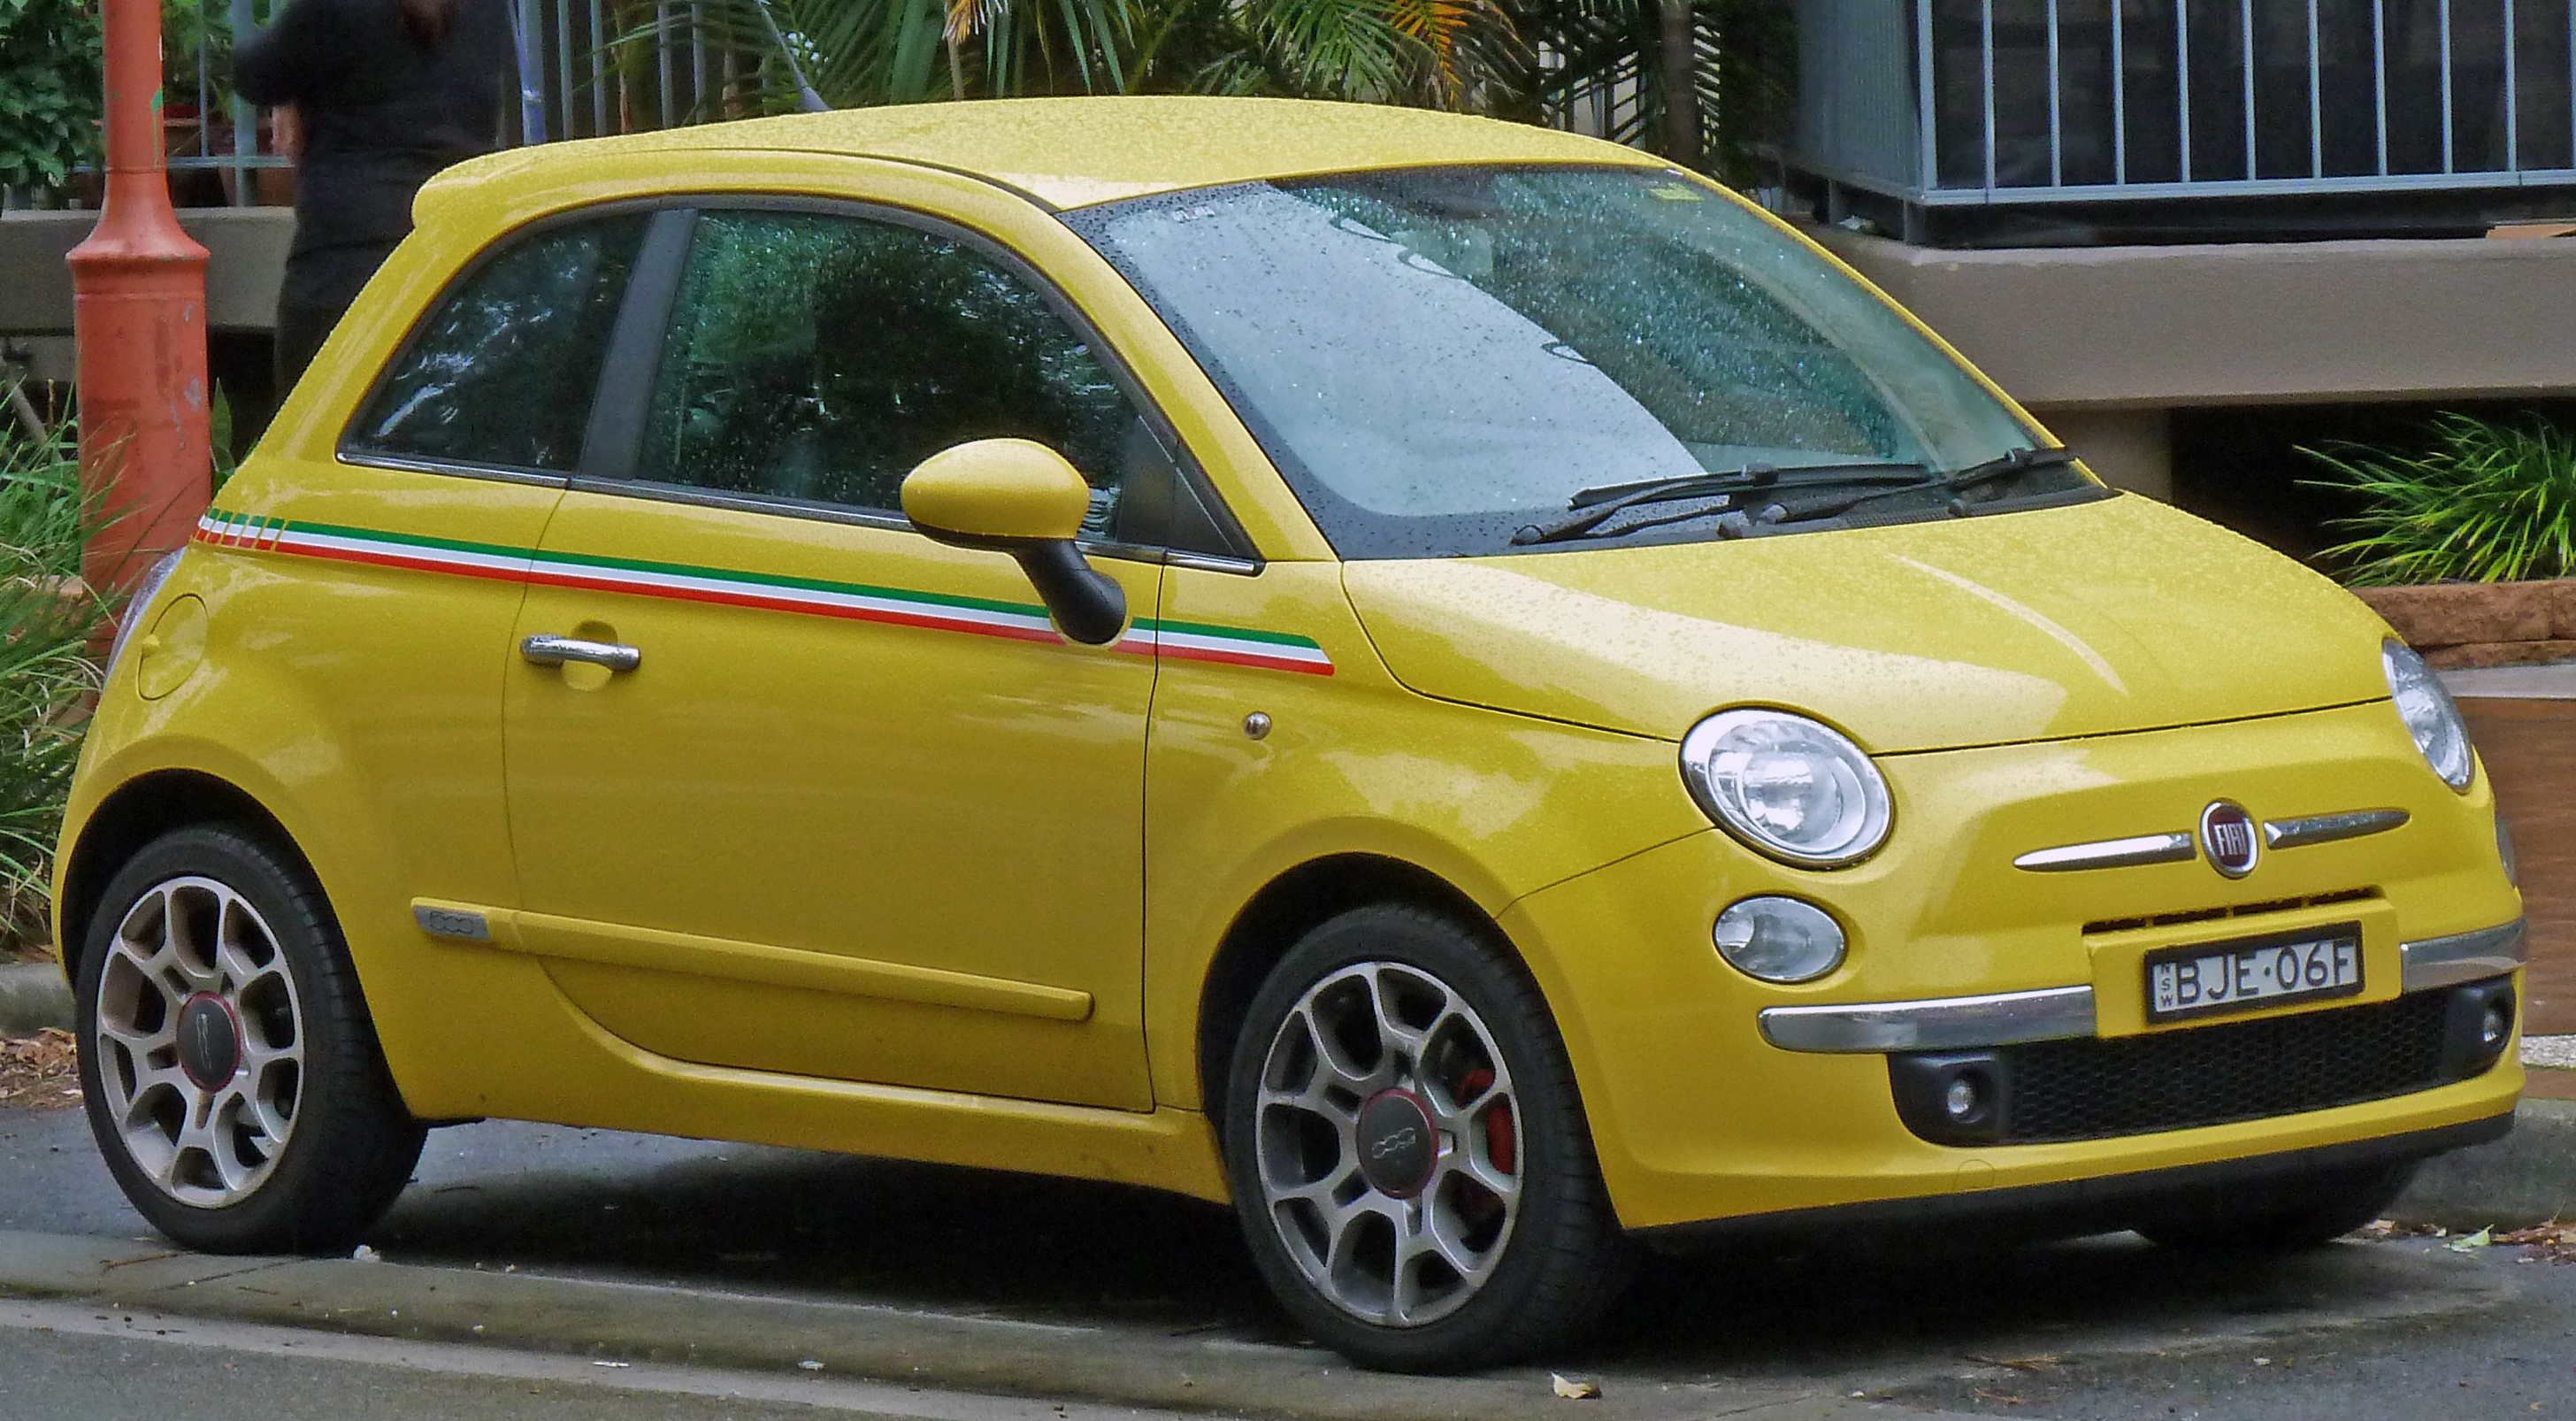 File:2008-2010 Fiat 500 Sport hatchback 01.jpg - Wikimedia Commons